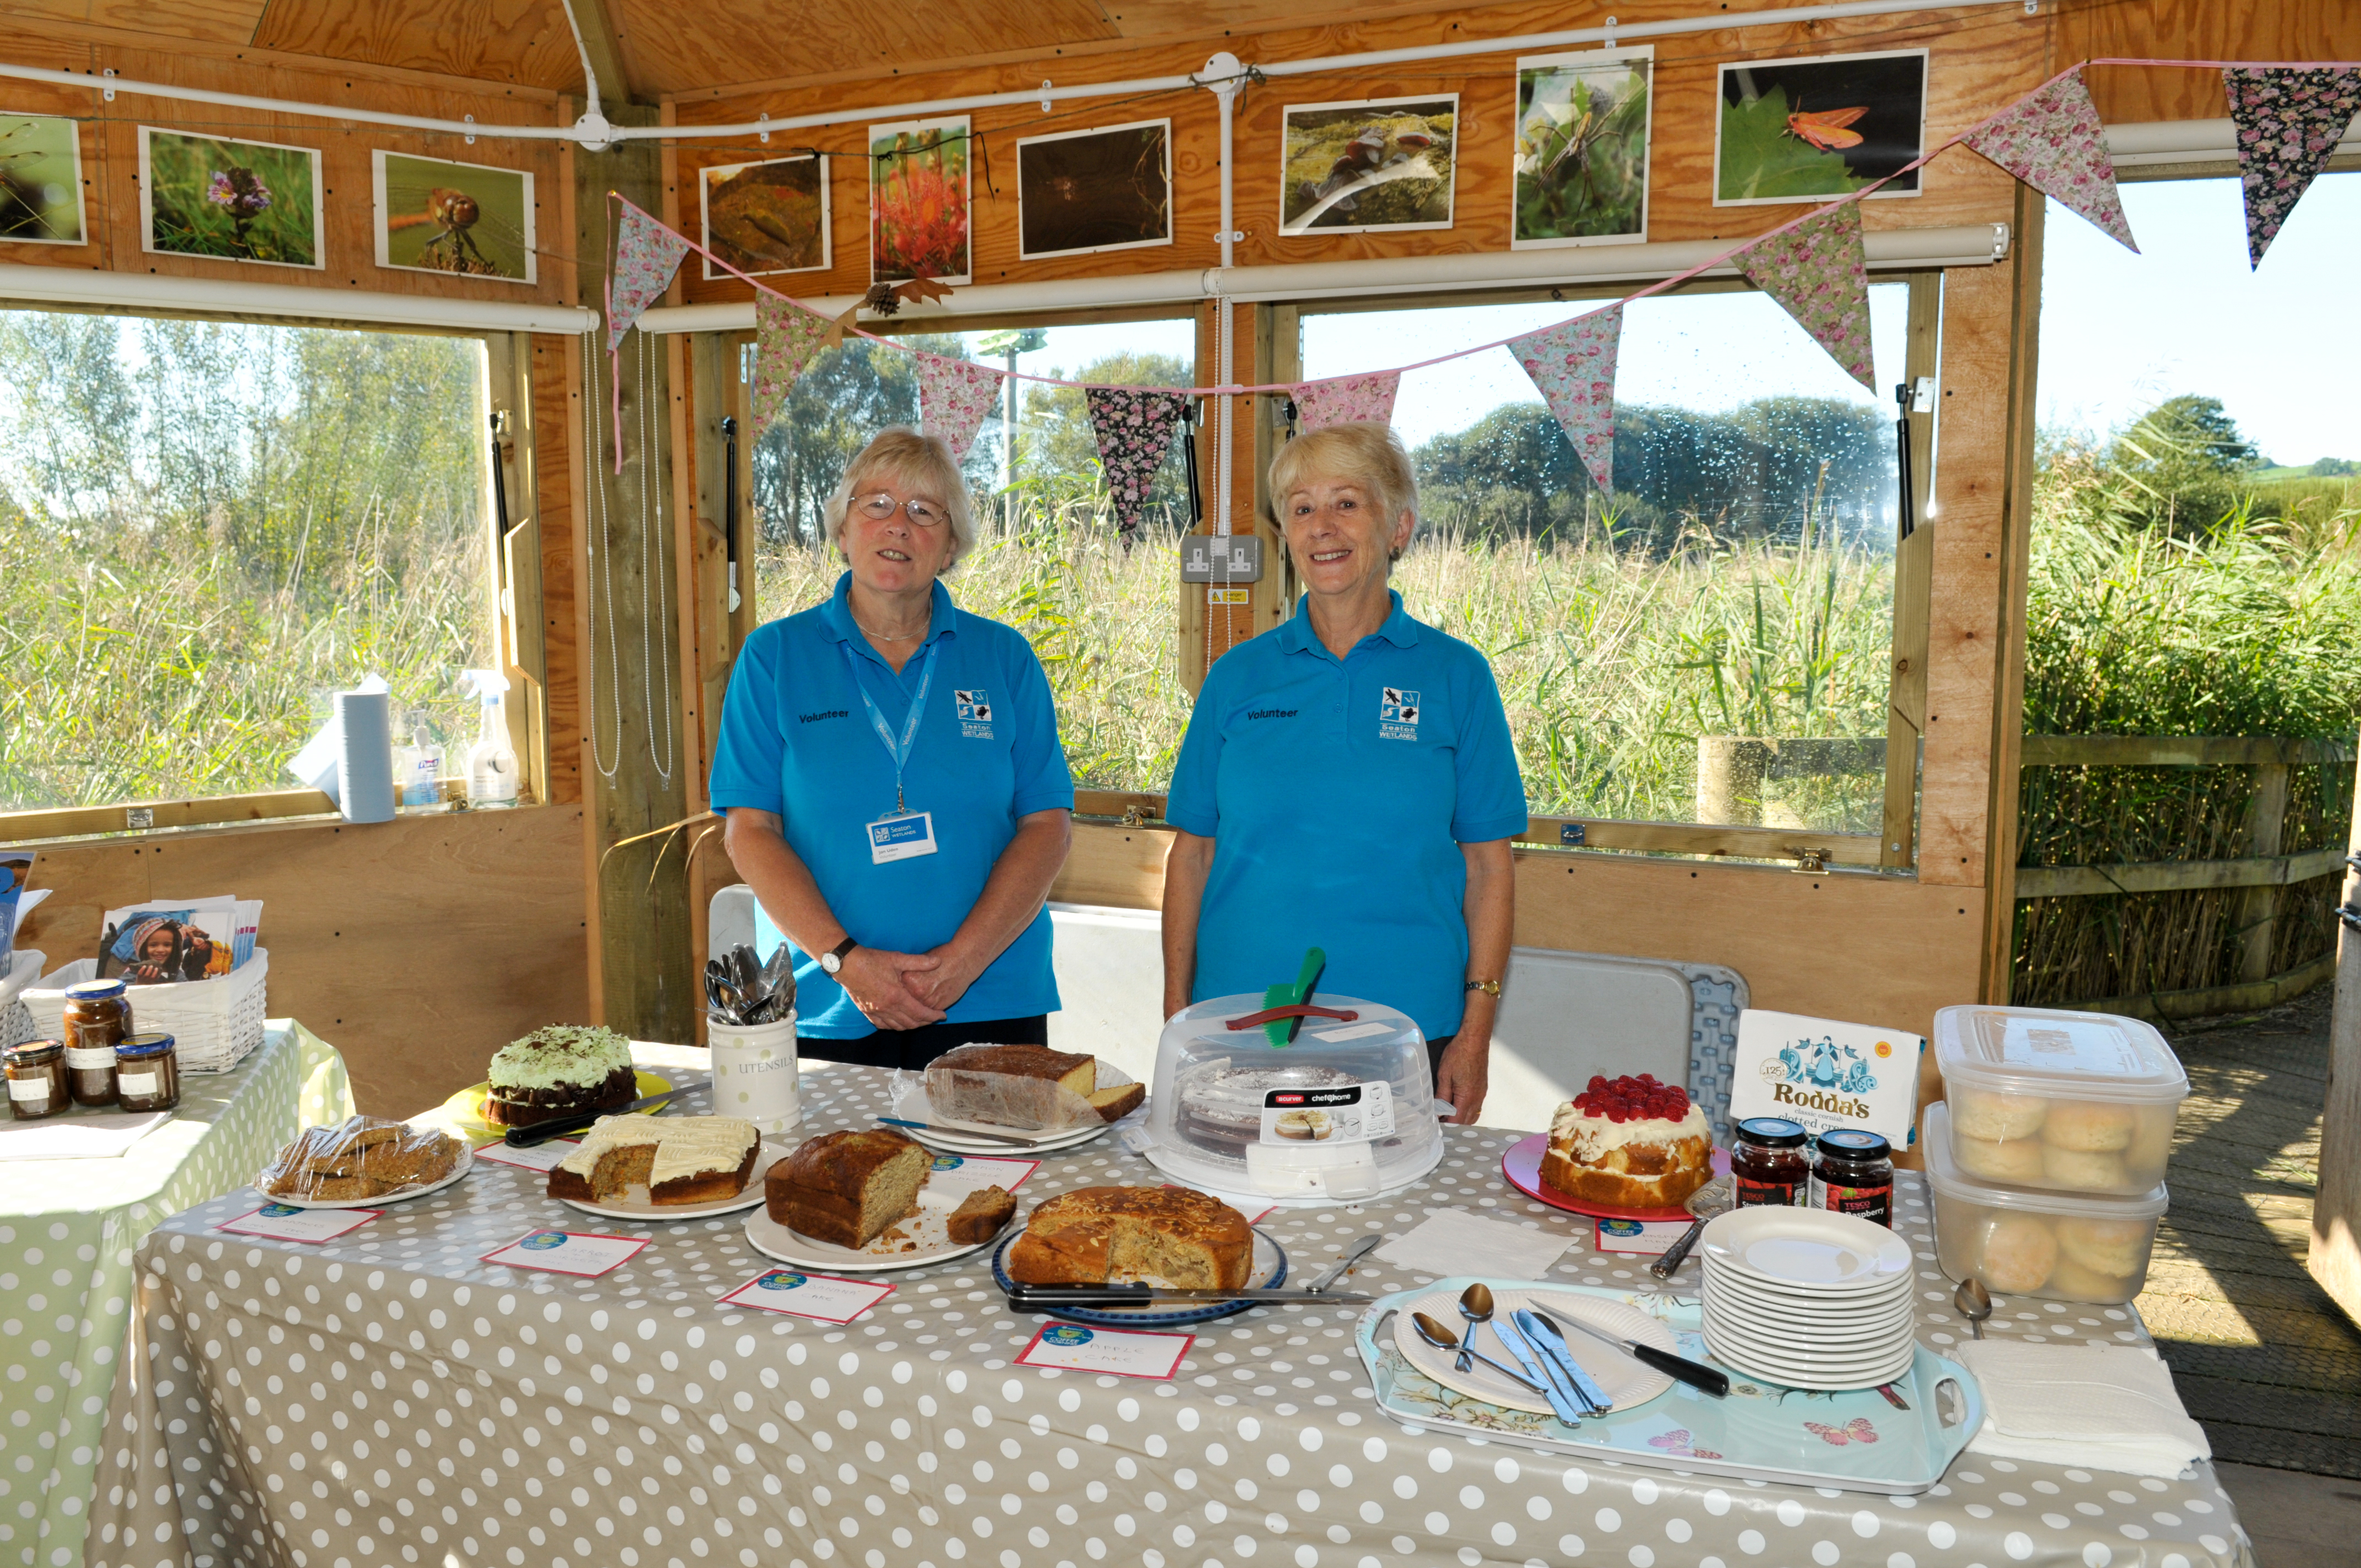 Mothers' Day treats at Seaton Wetlands 10 March 10am to 4pm